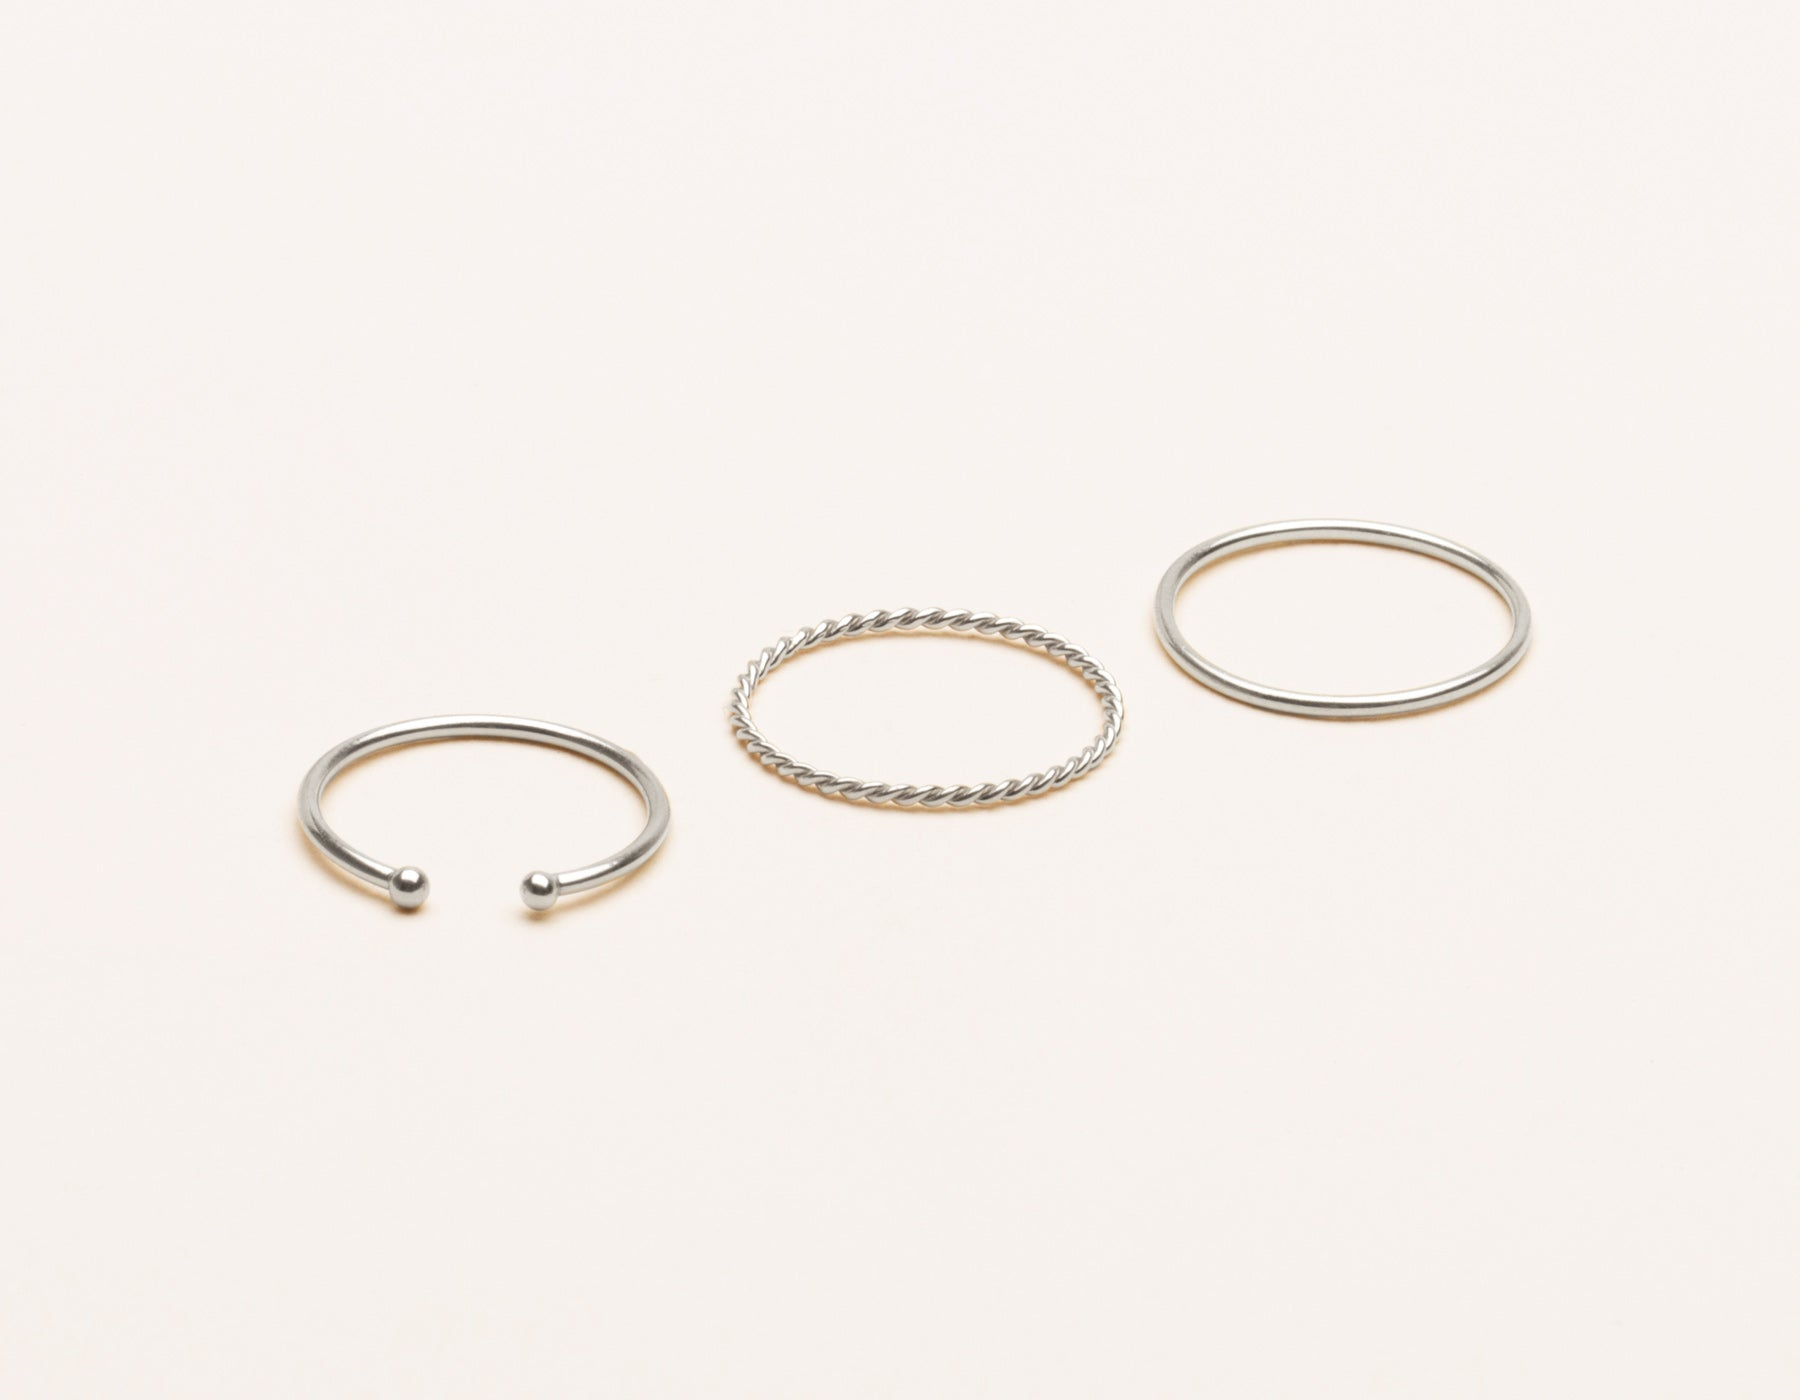 vrai and Oro delicate 14k solid gold classic simple stack skinny stacker twist ring dot cuff, 14K White Gold